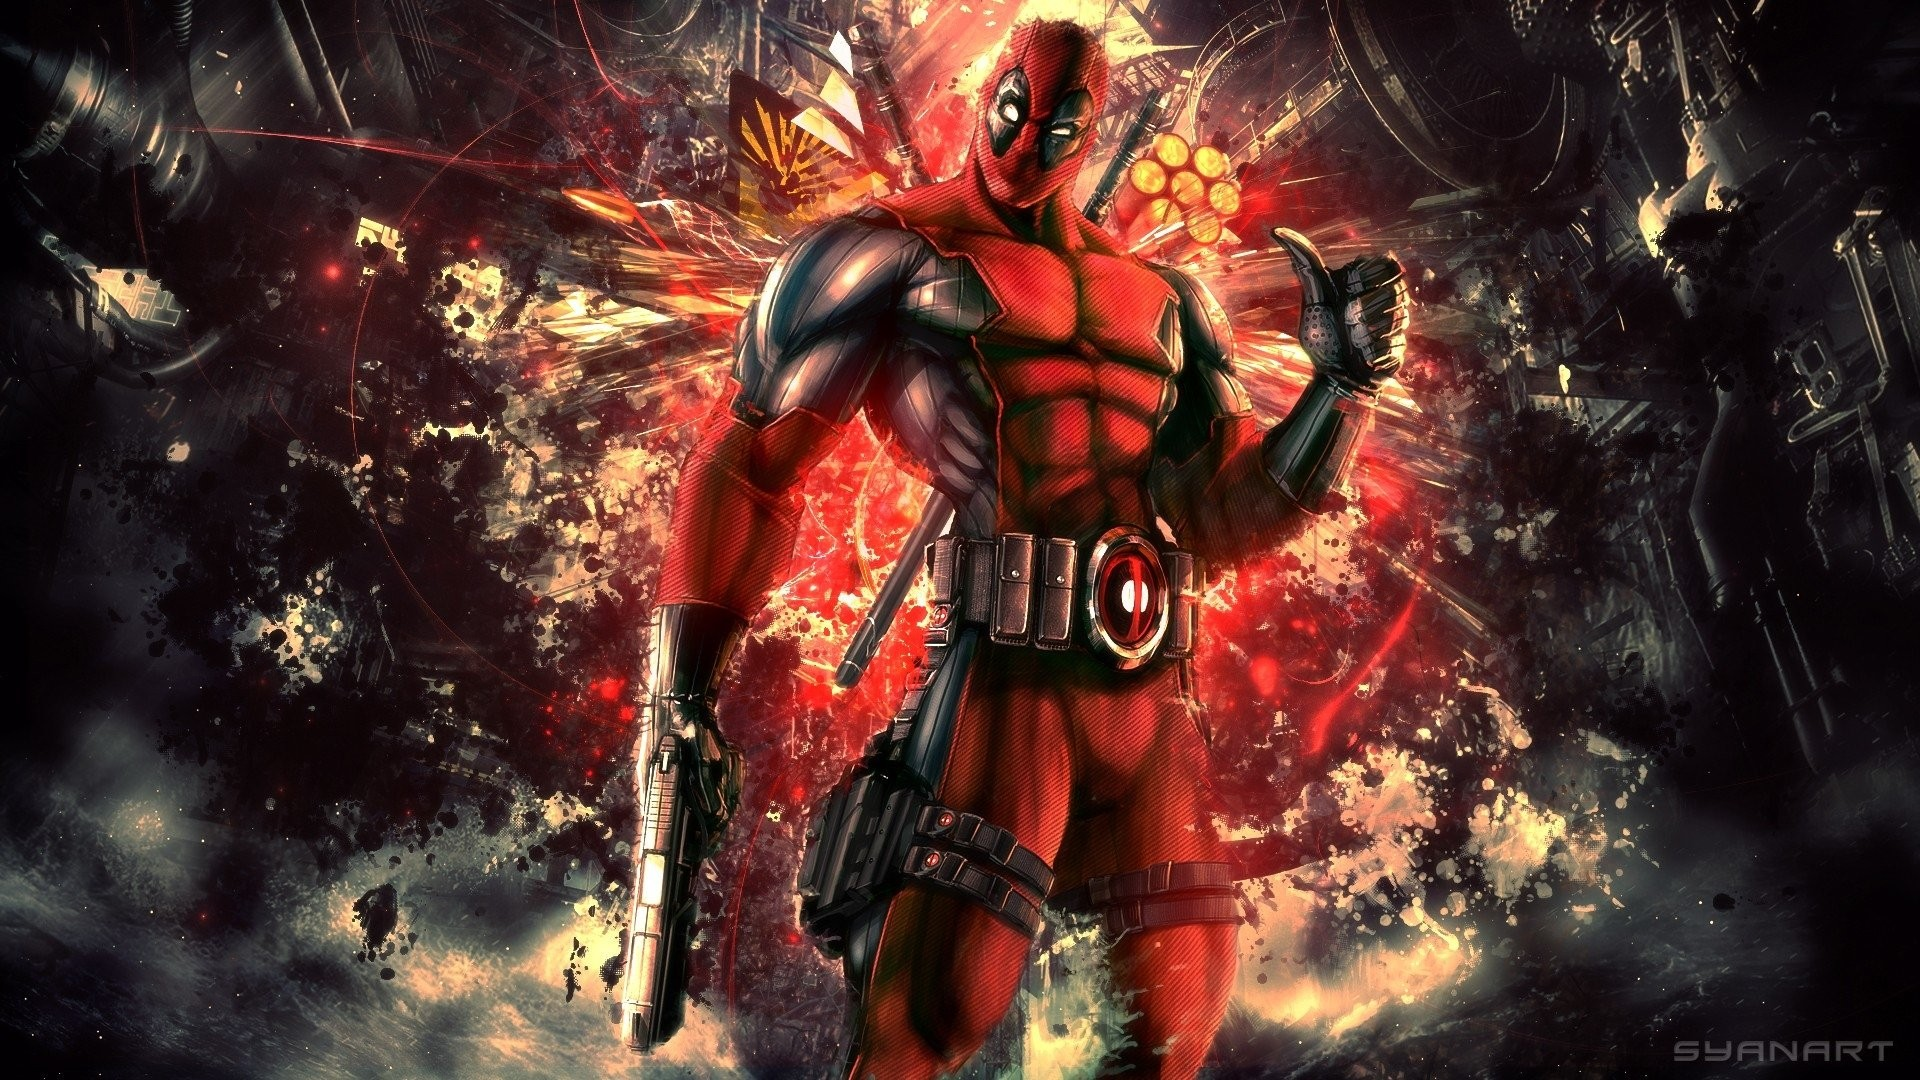 Deadpool Wallpaper Hd 1080p Download Free Stunning Hd Wallpapers